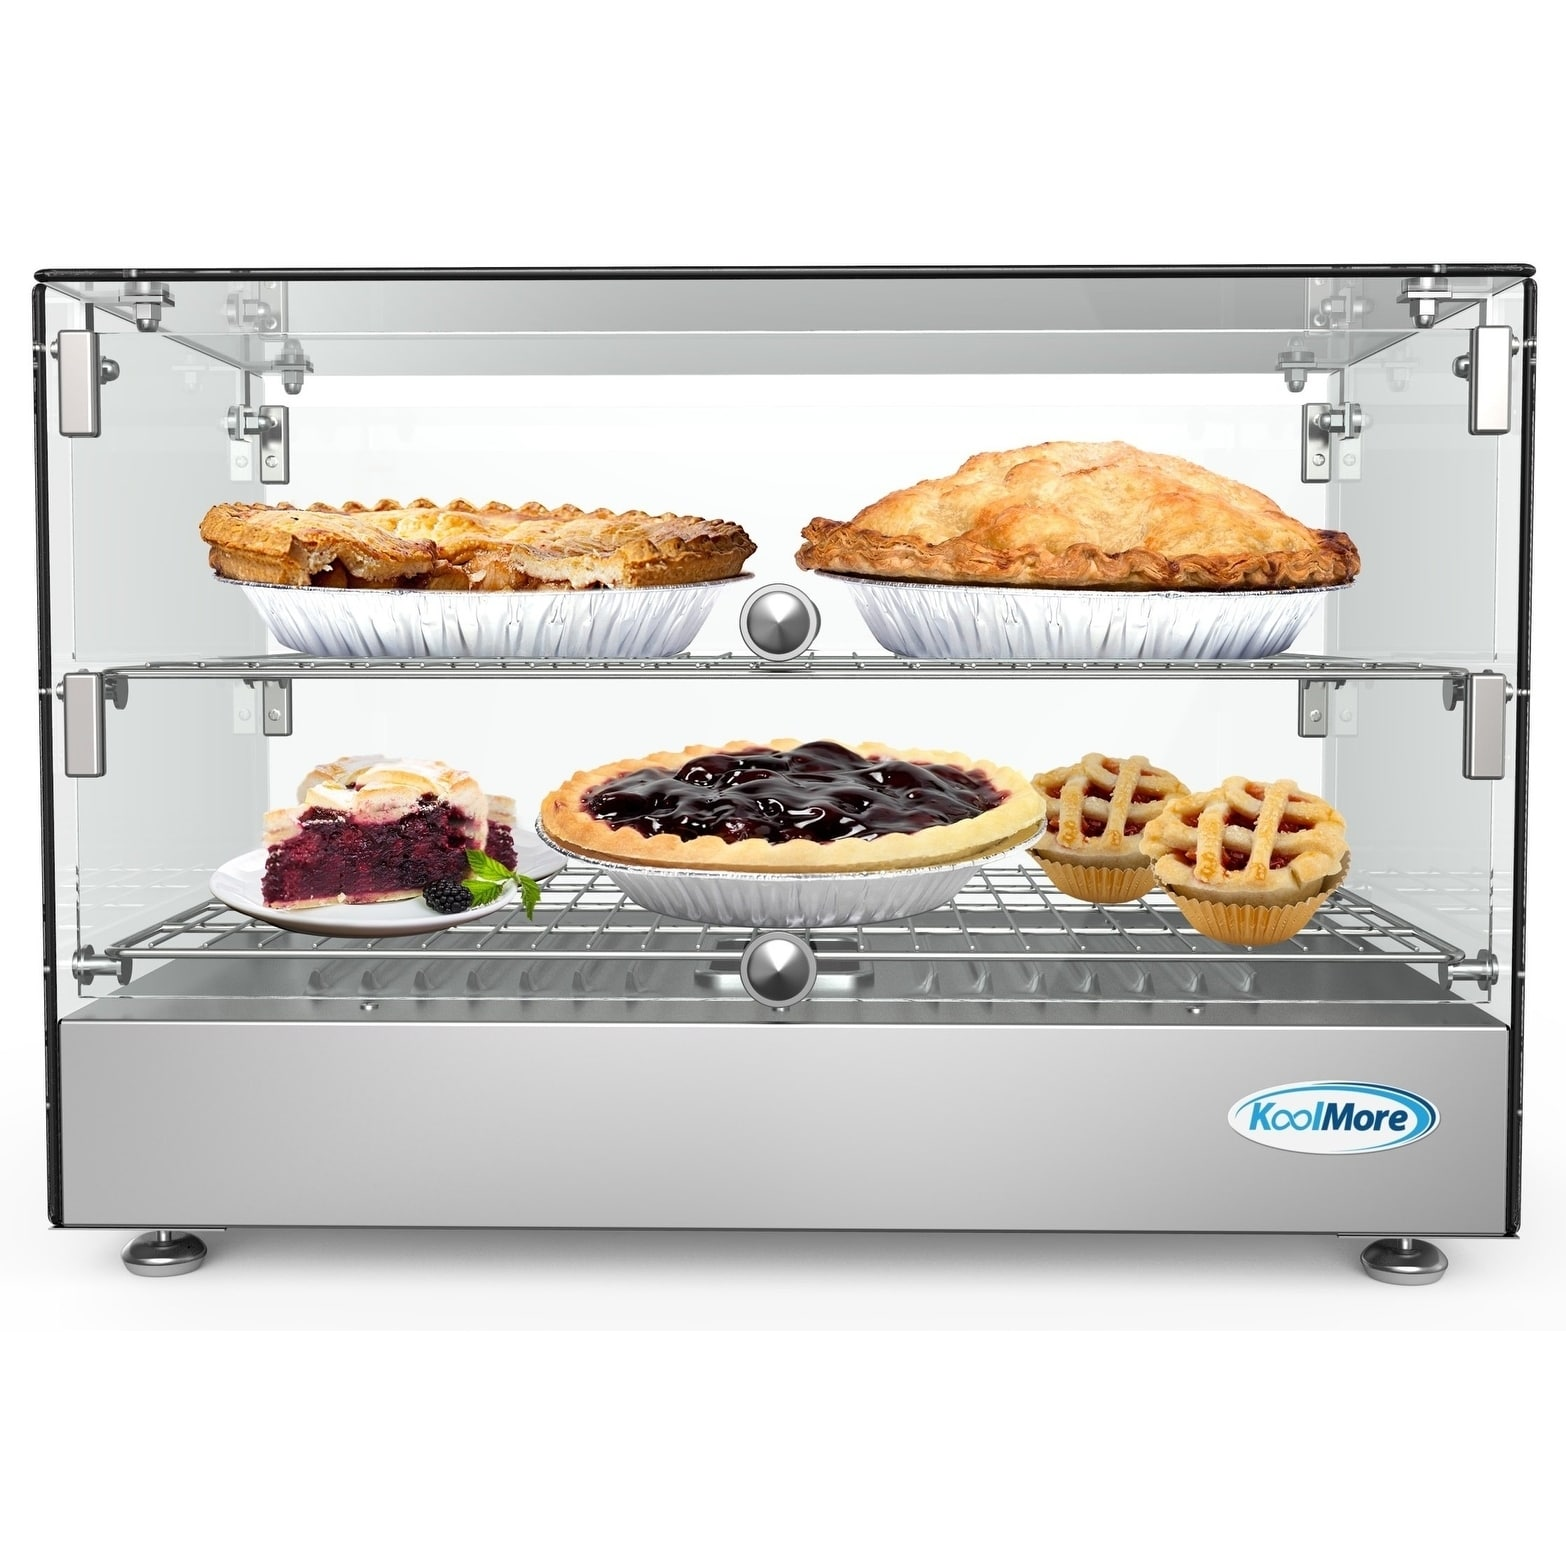 22 Inch Self Service Commercial Countertop Food Warmer Display